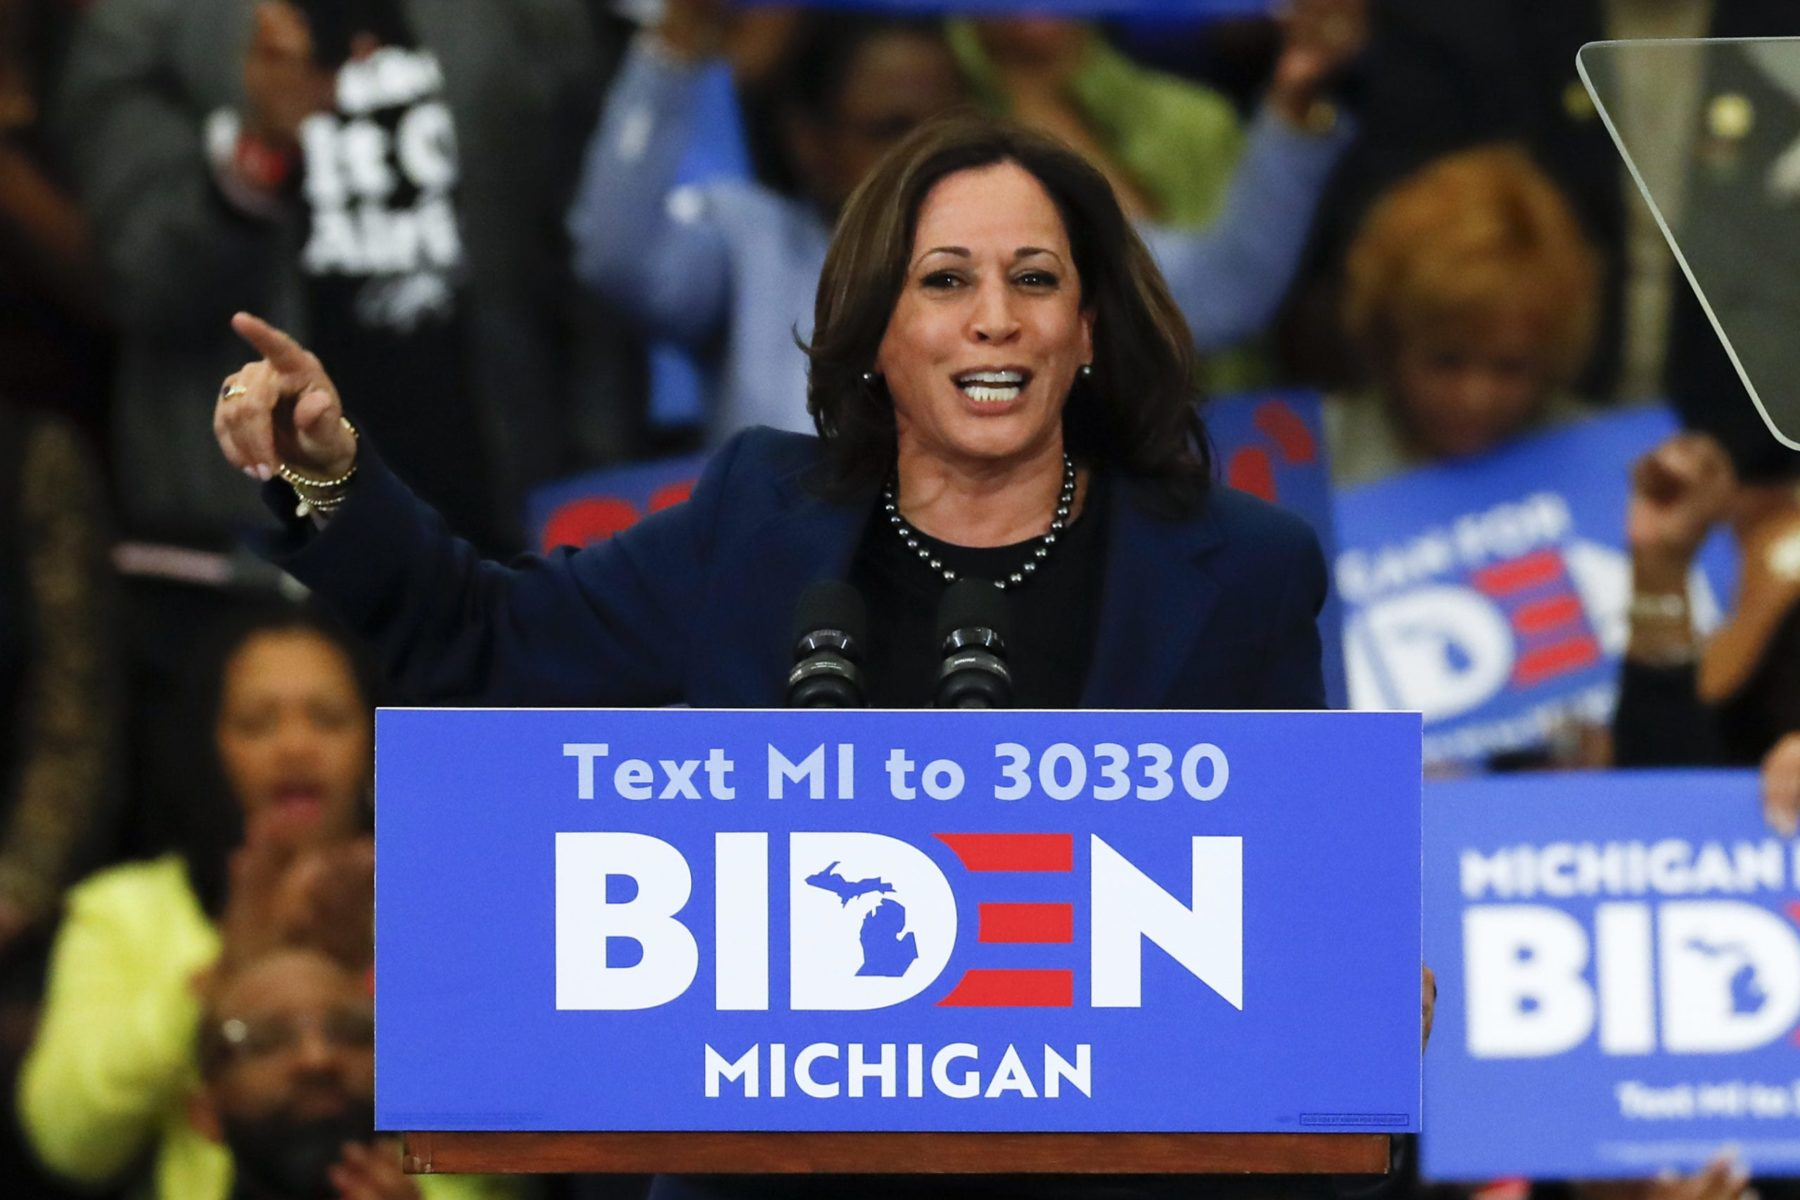 Kamala Harris at Joe Biden rally